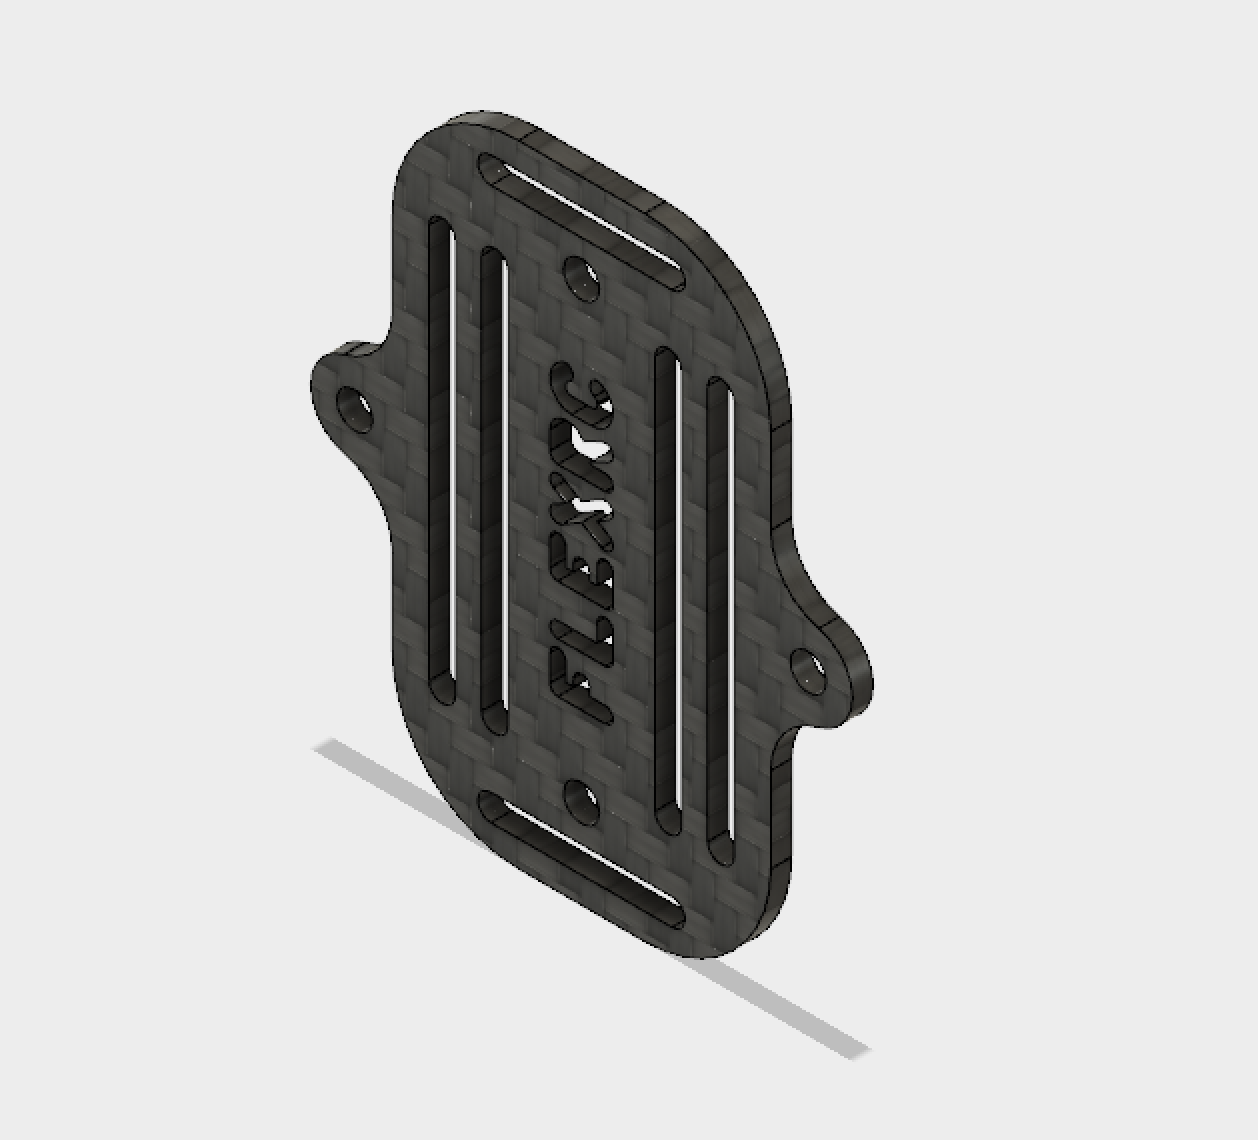 Owl - Battery mounting / protecting plate